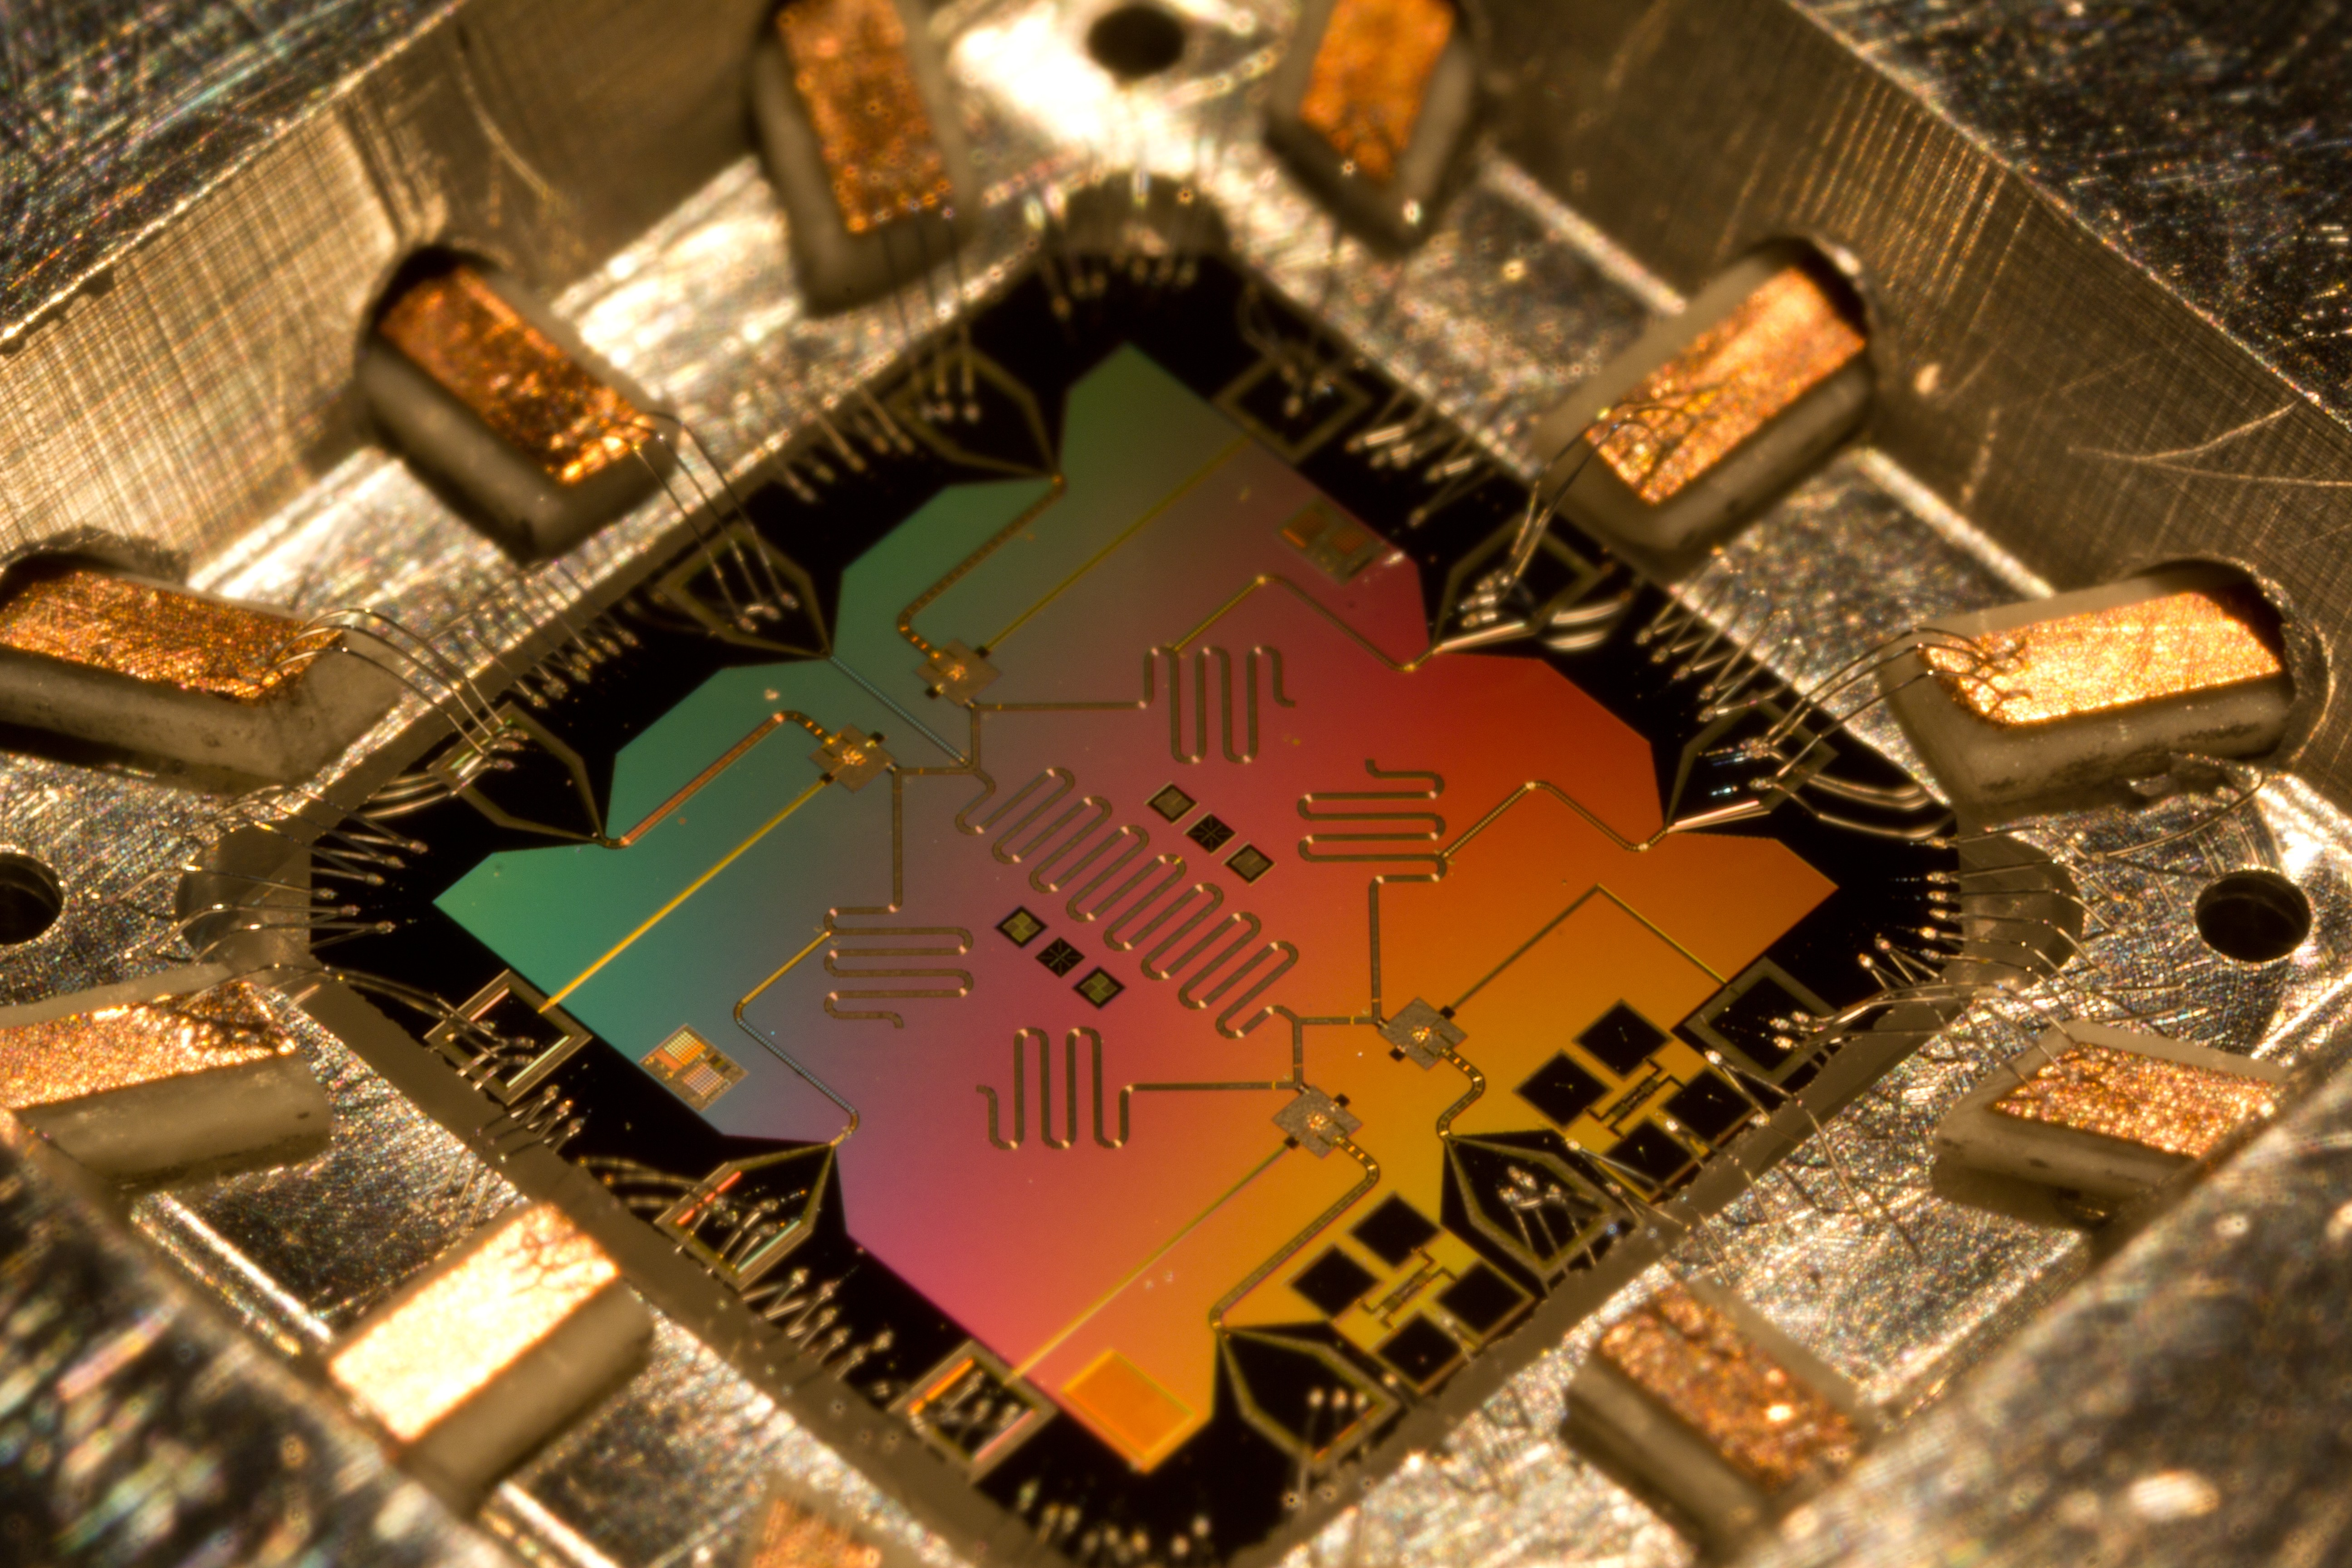 Chinese scientists develop a photonic quantum chip for boosting analog quantum computing